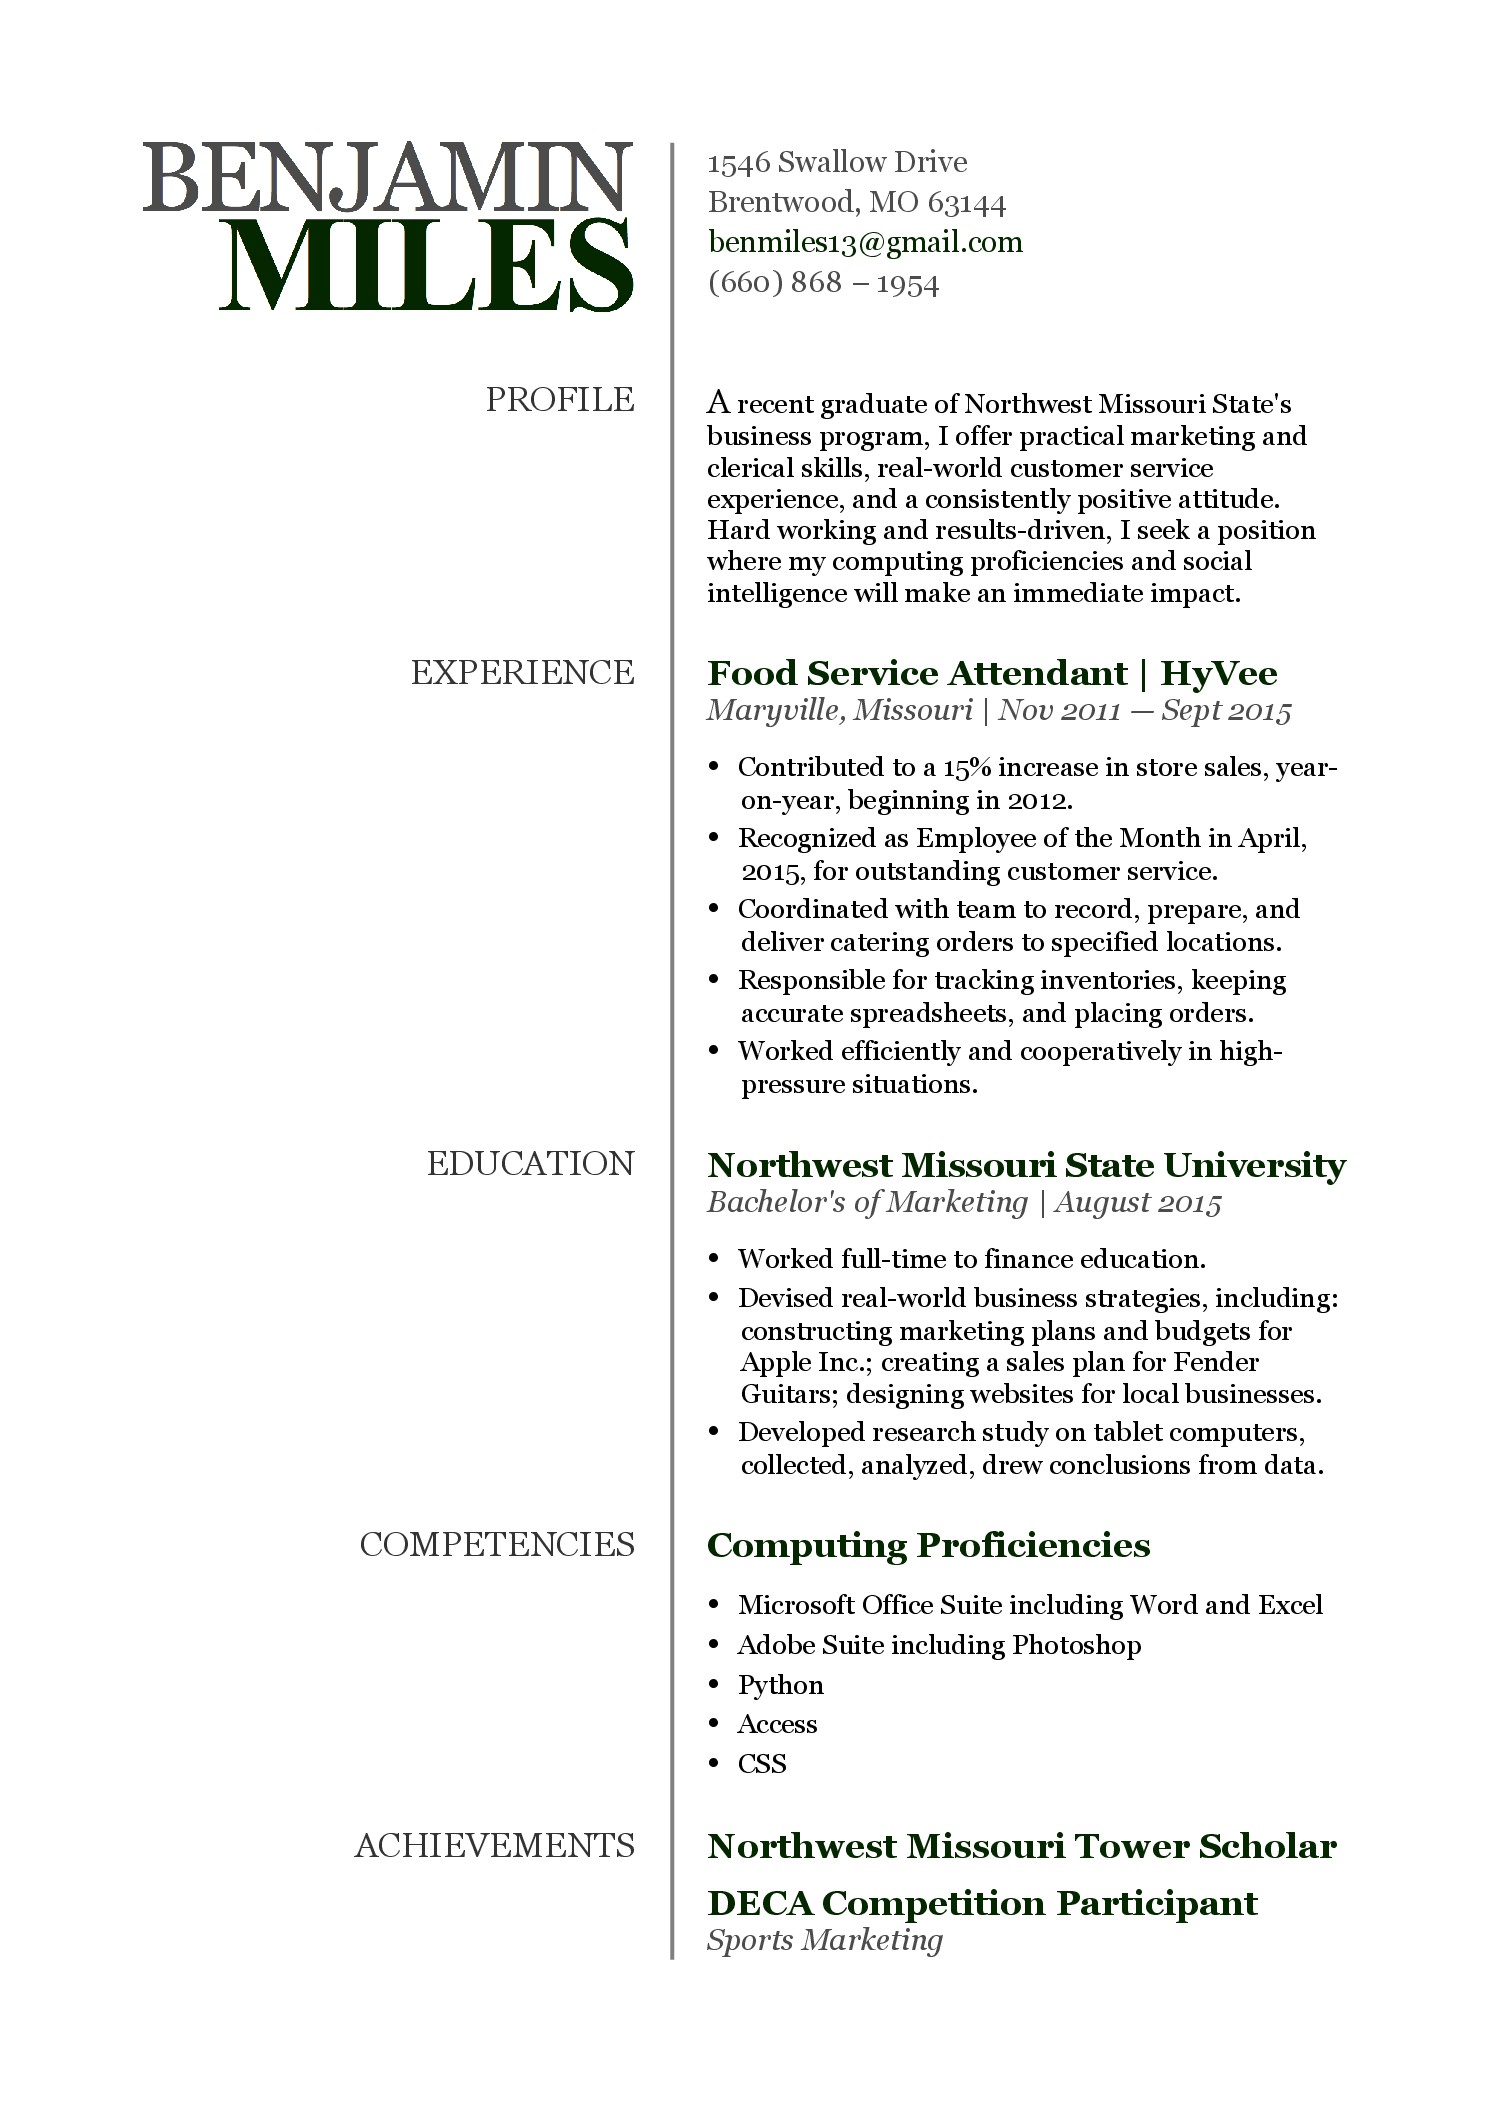 freelance writing services what is a lance writer html resume